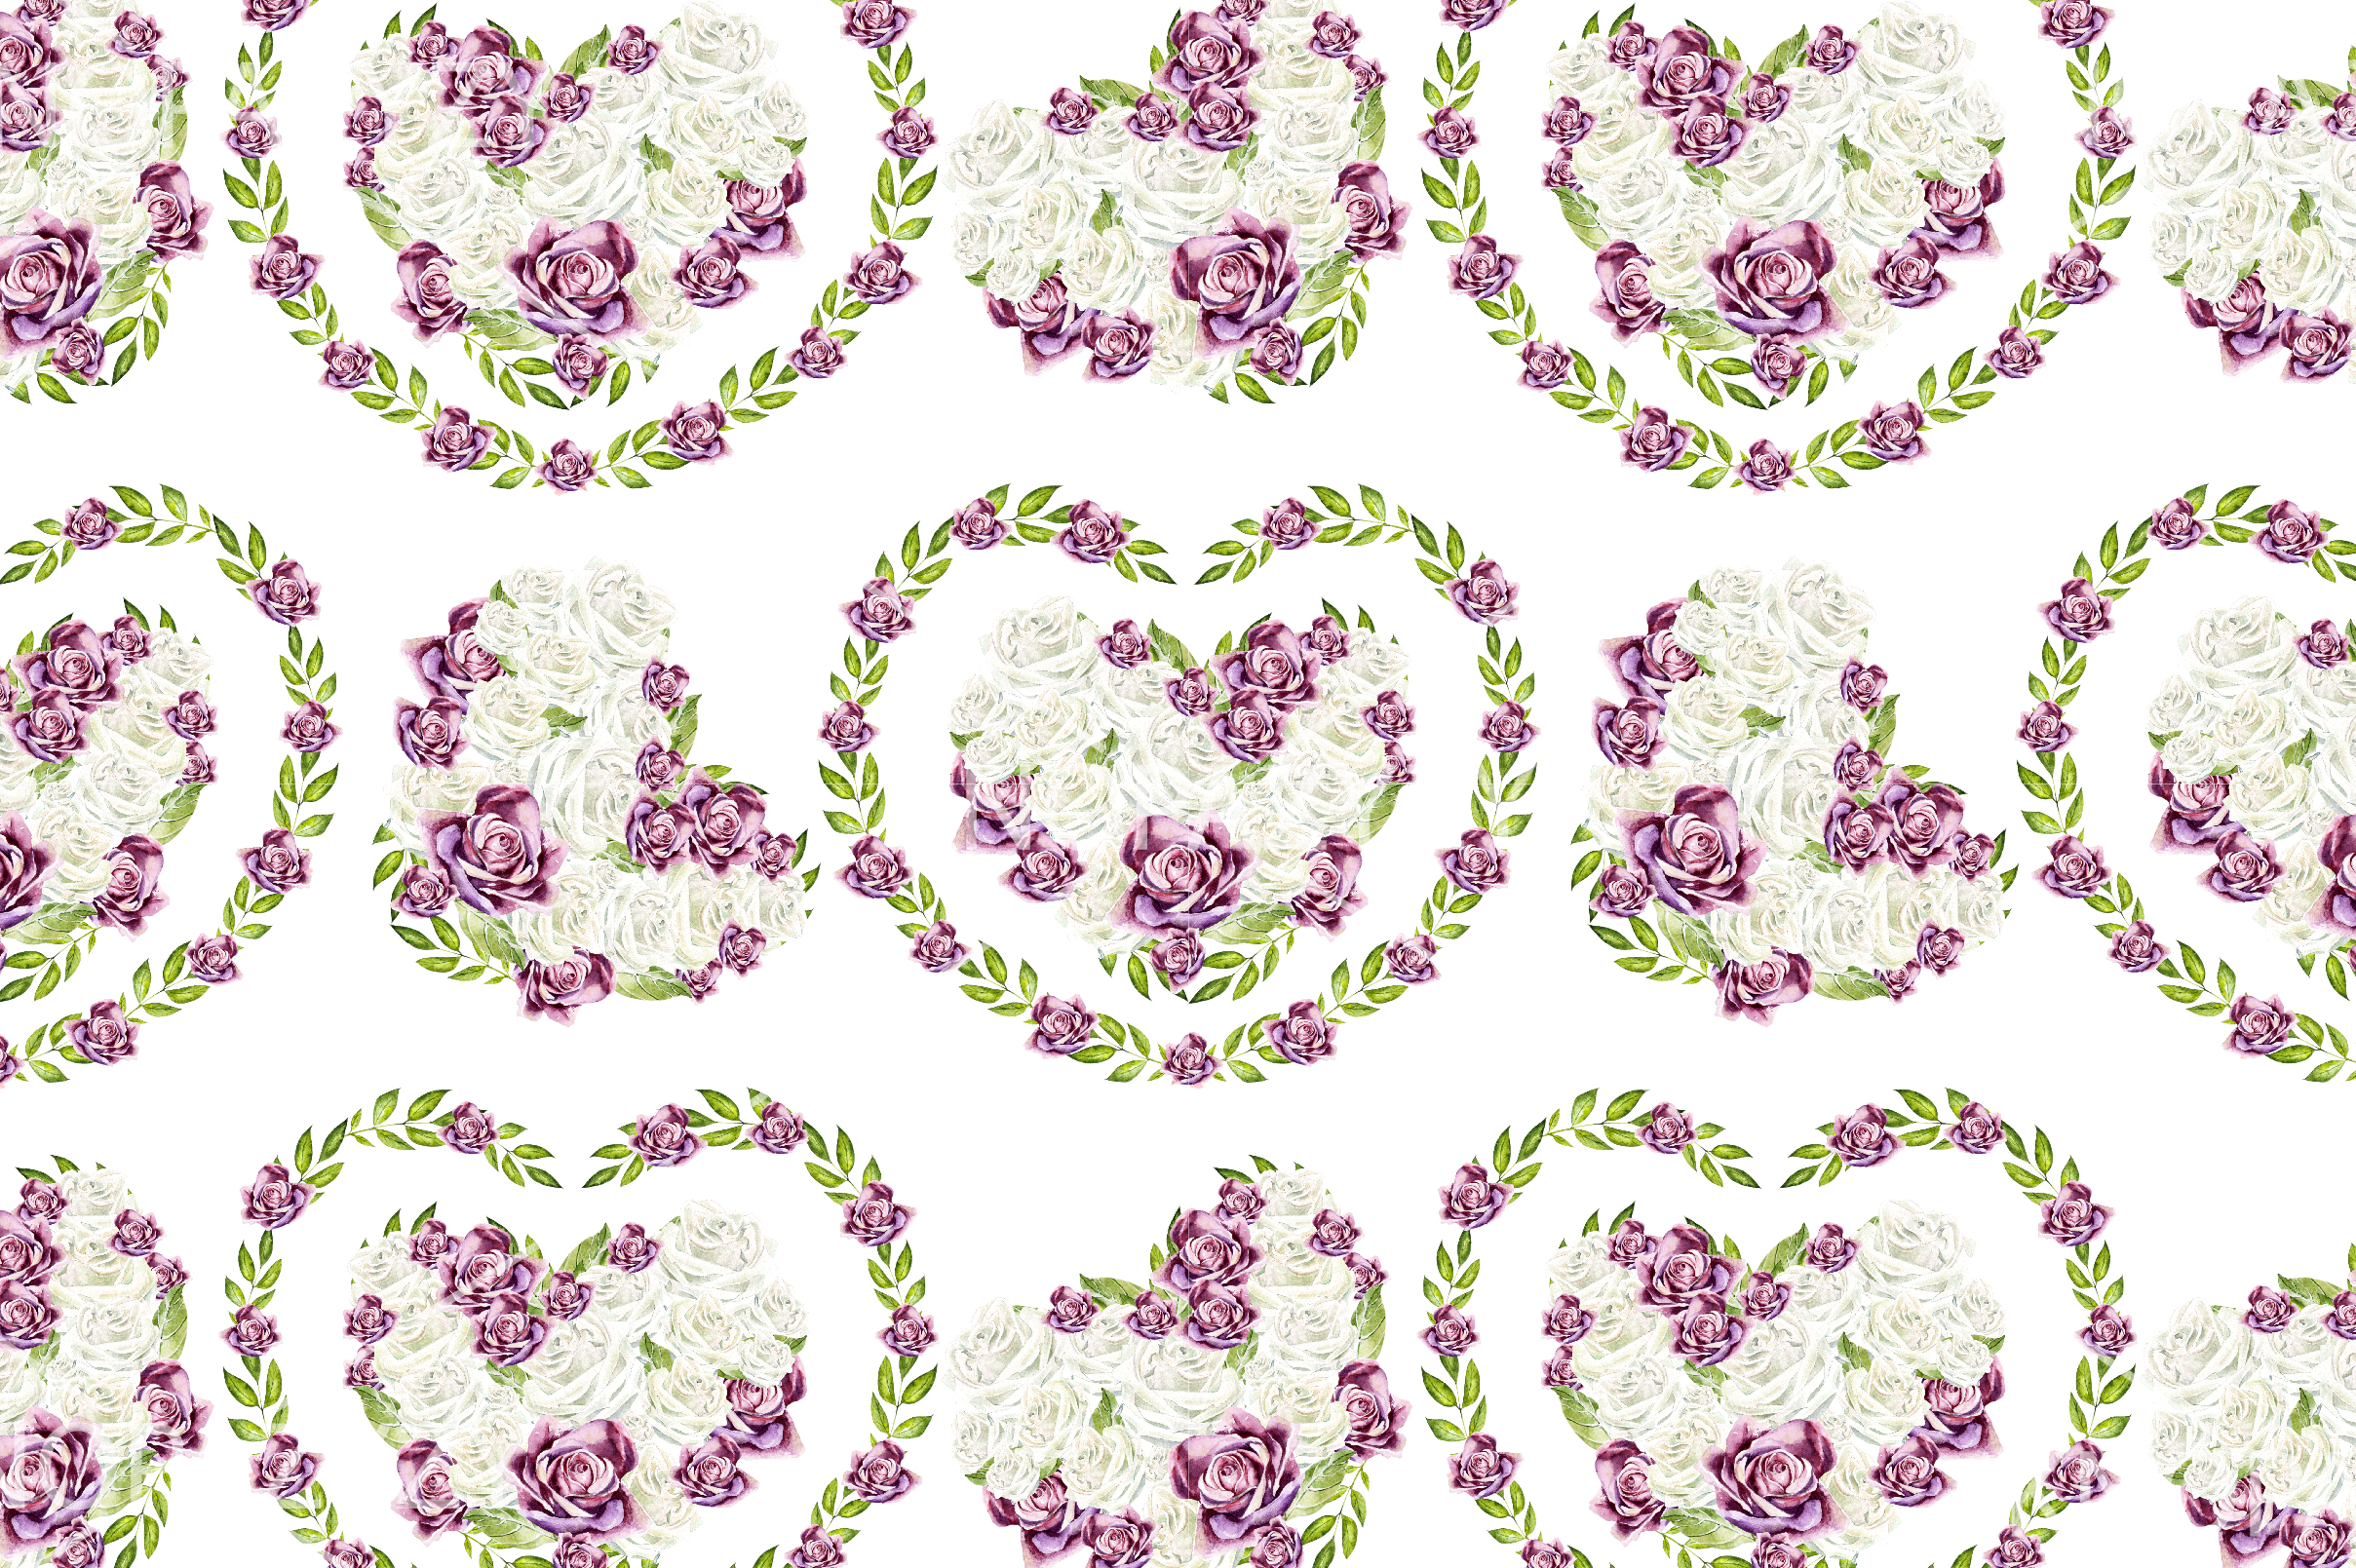 15 Hand Drawn Watercolor PATTERNS example image 9